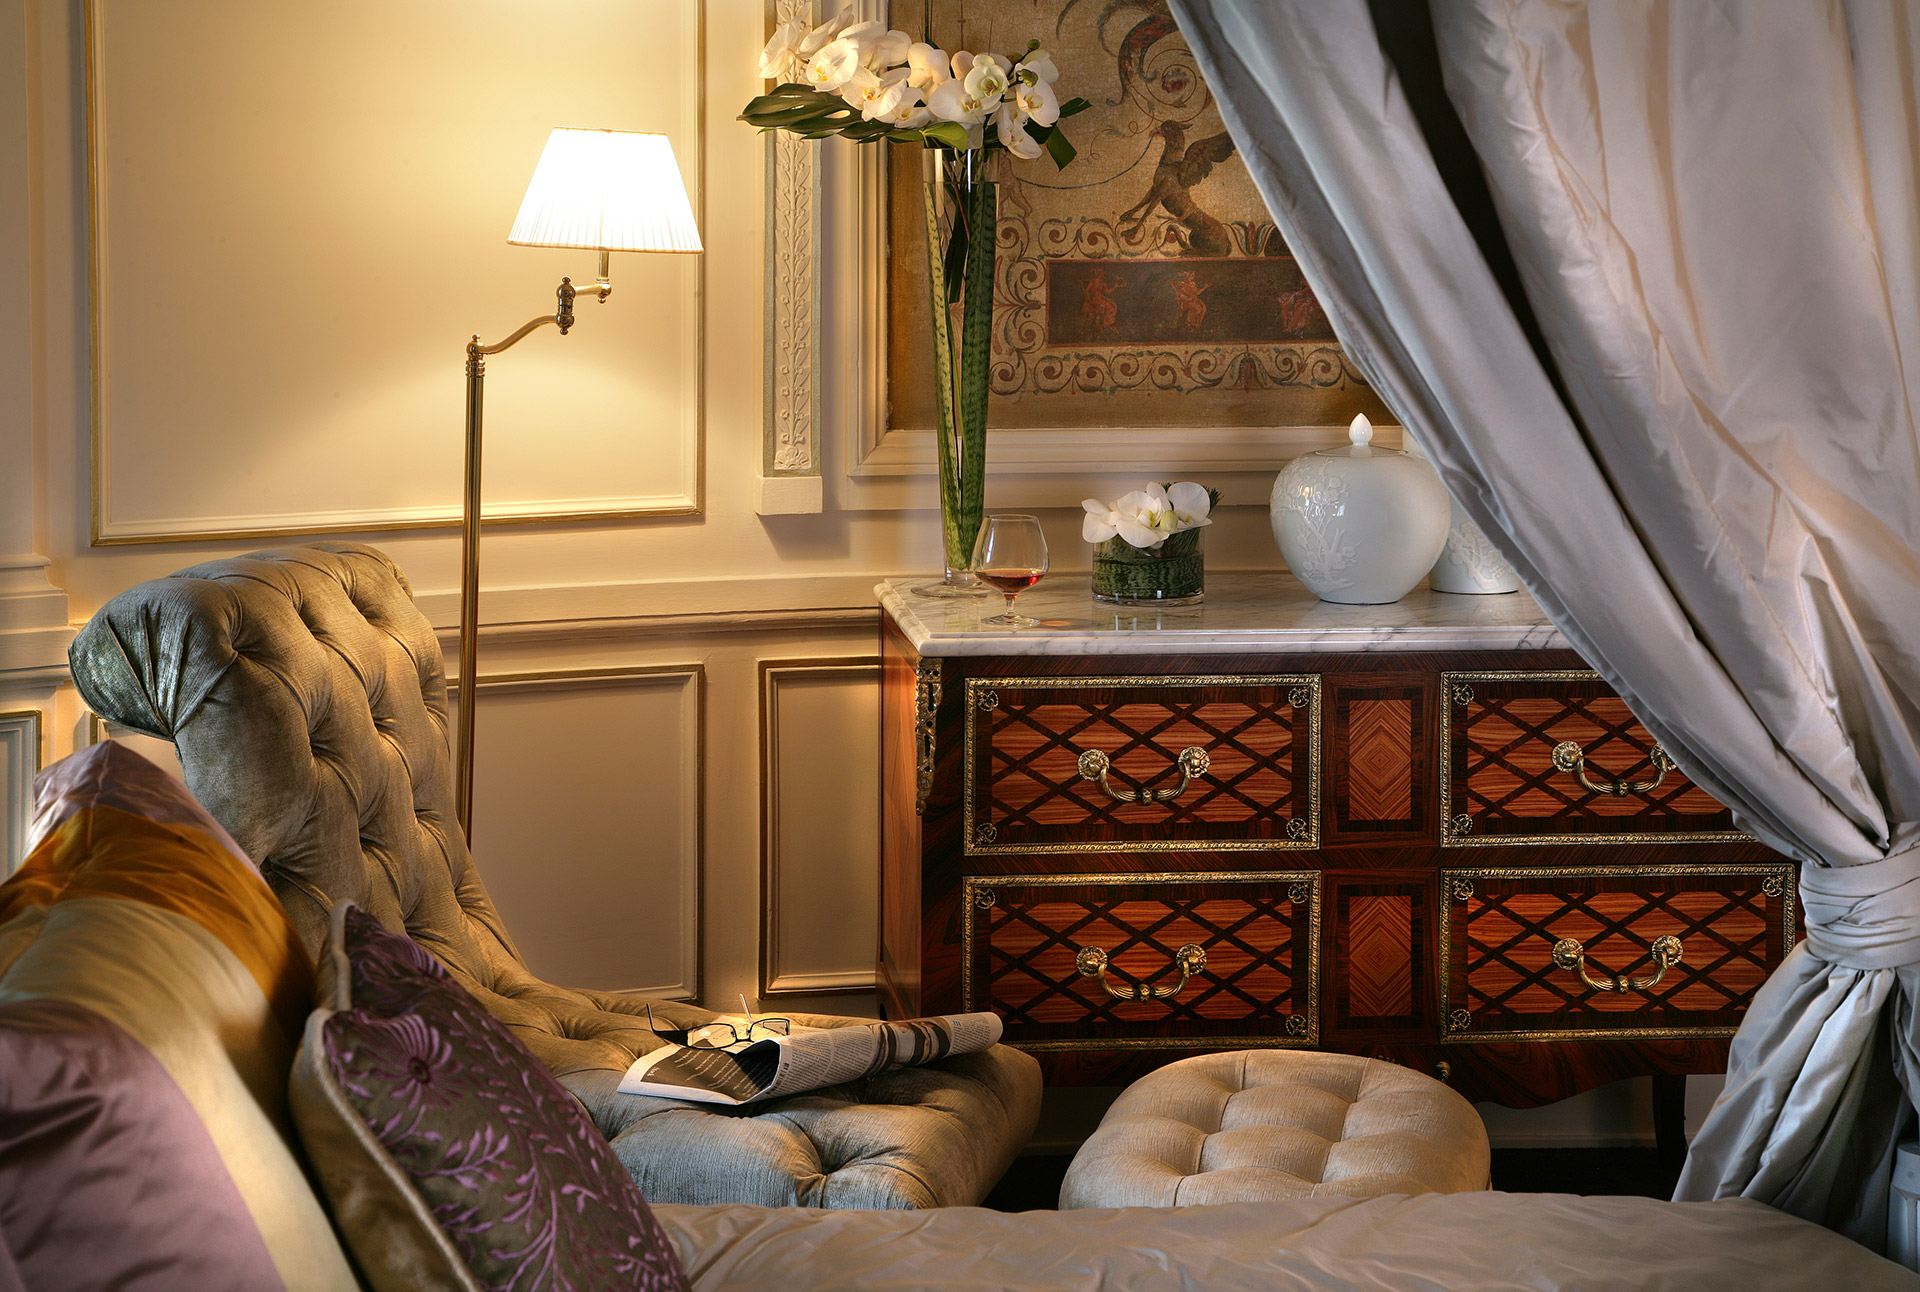 467/import-from-v1/images/Chambres/Suite Royale/146-salon.jpg